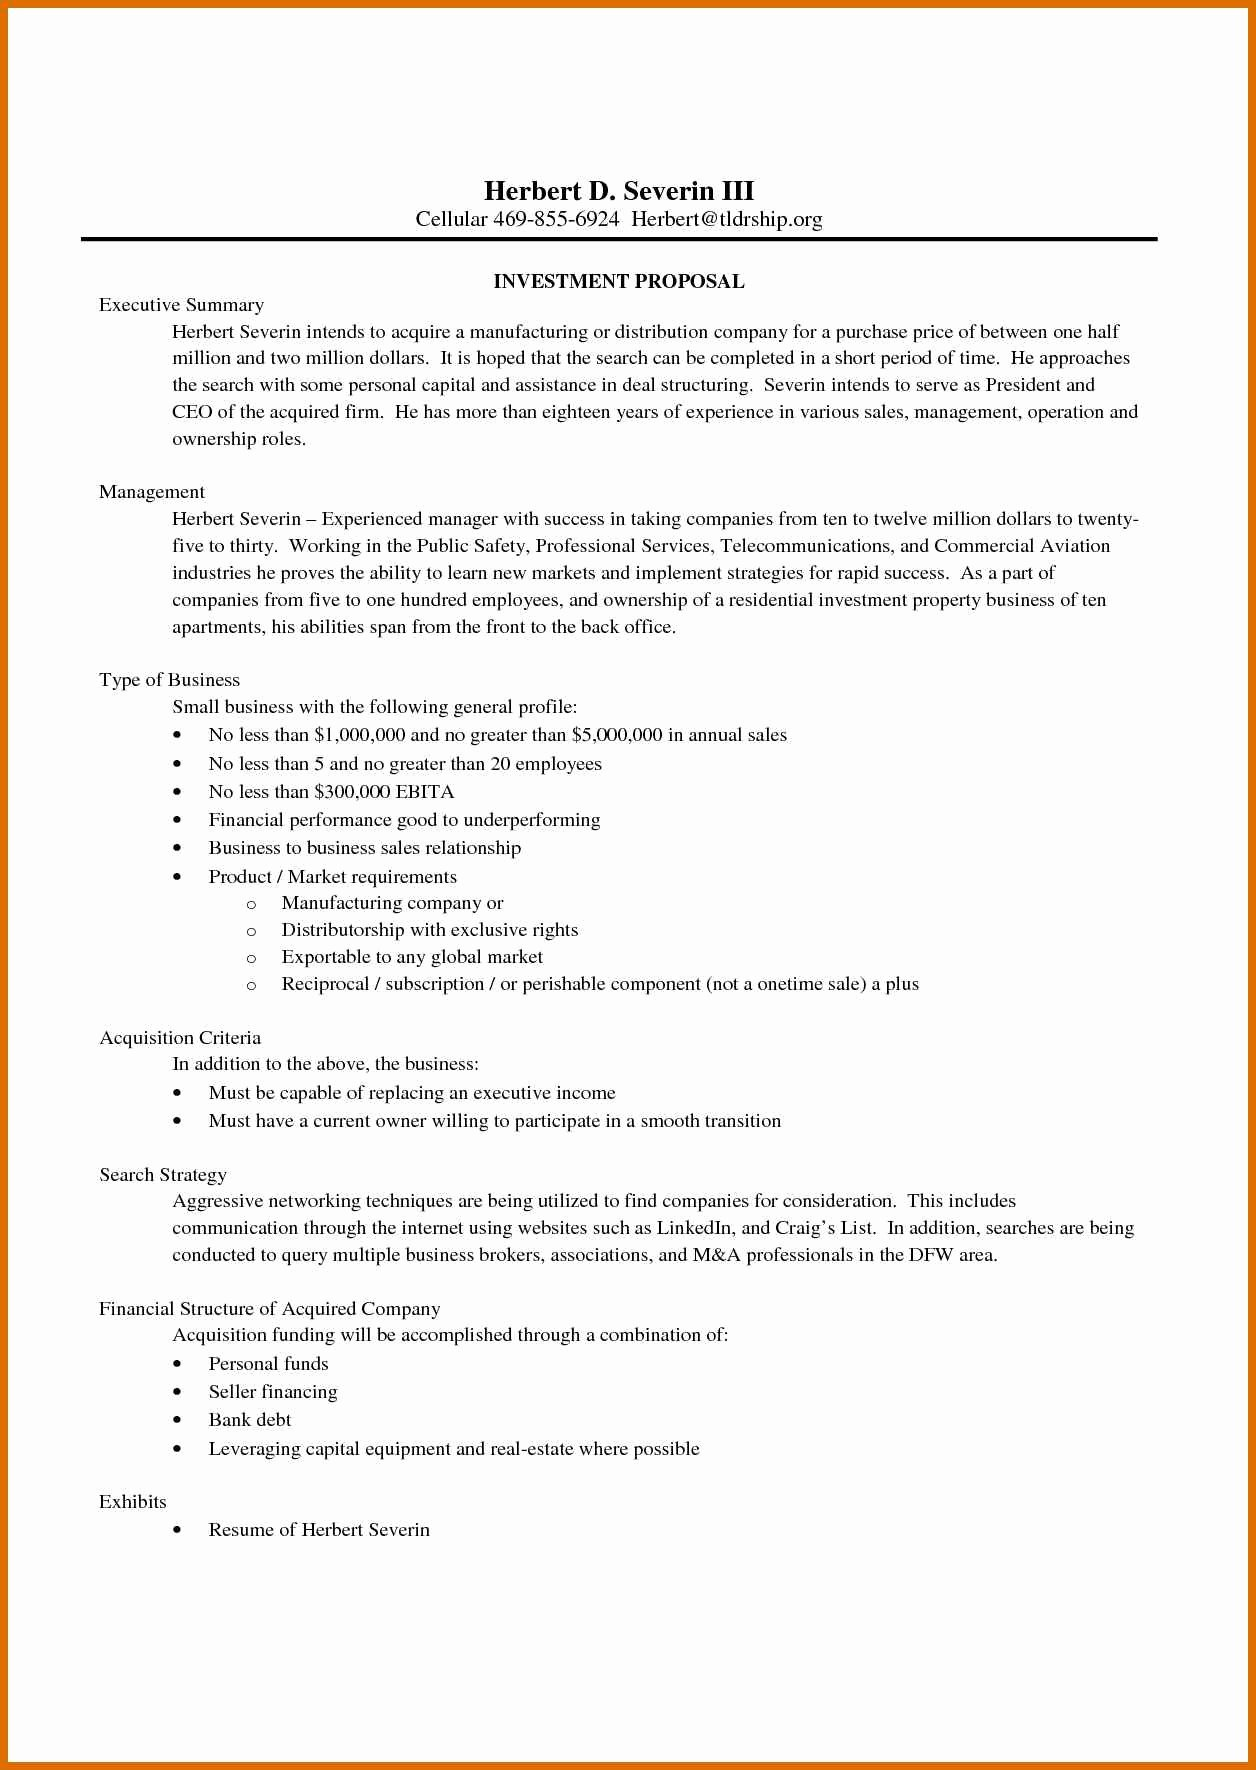 Business Investment Proposal Template Lovely 6 7 Investor Proposal Template